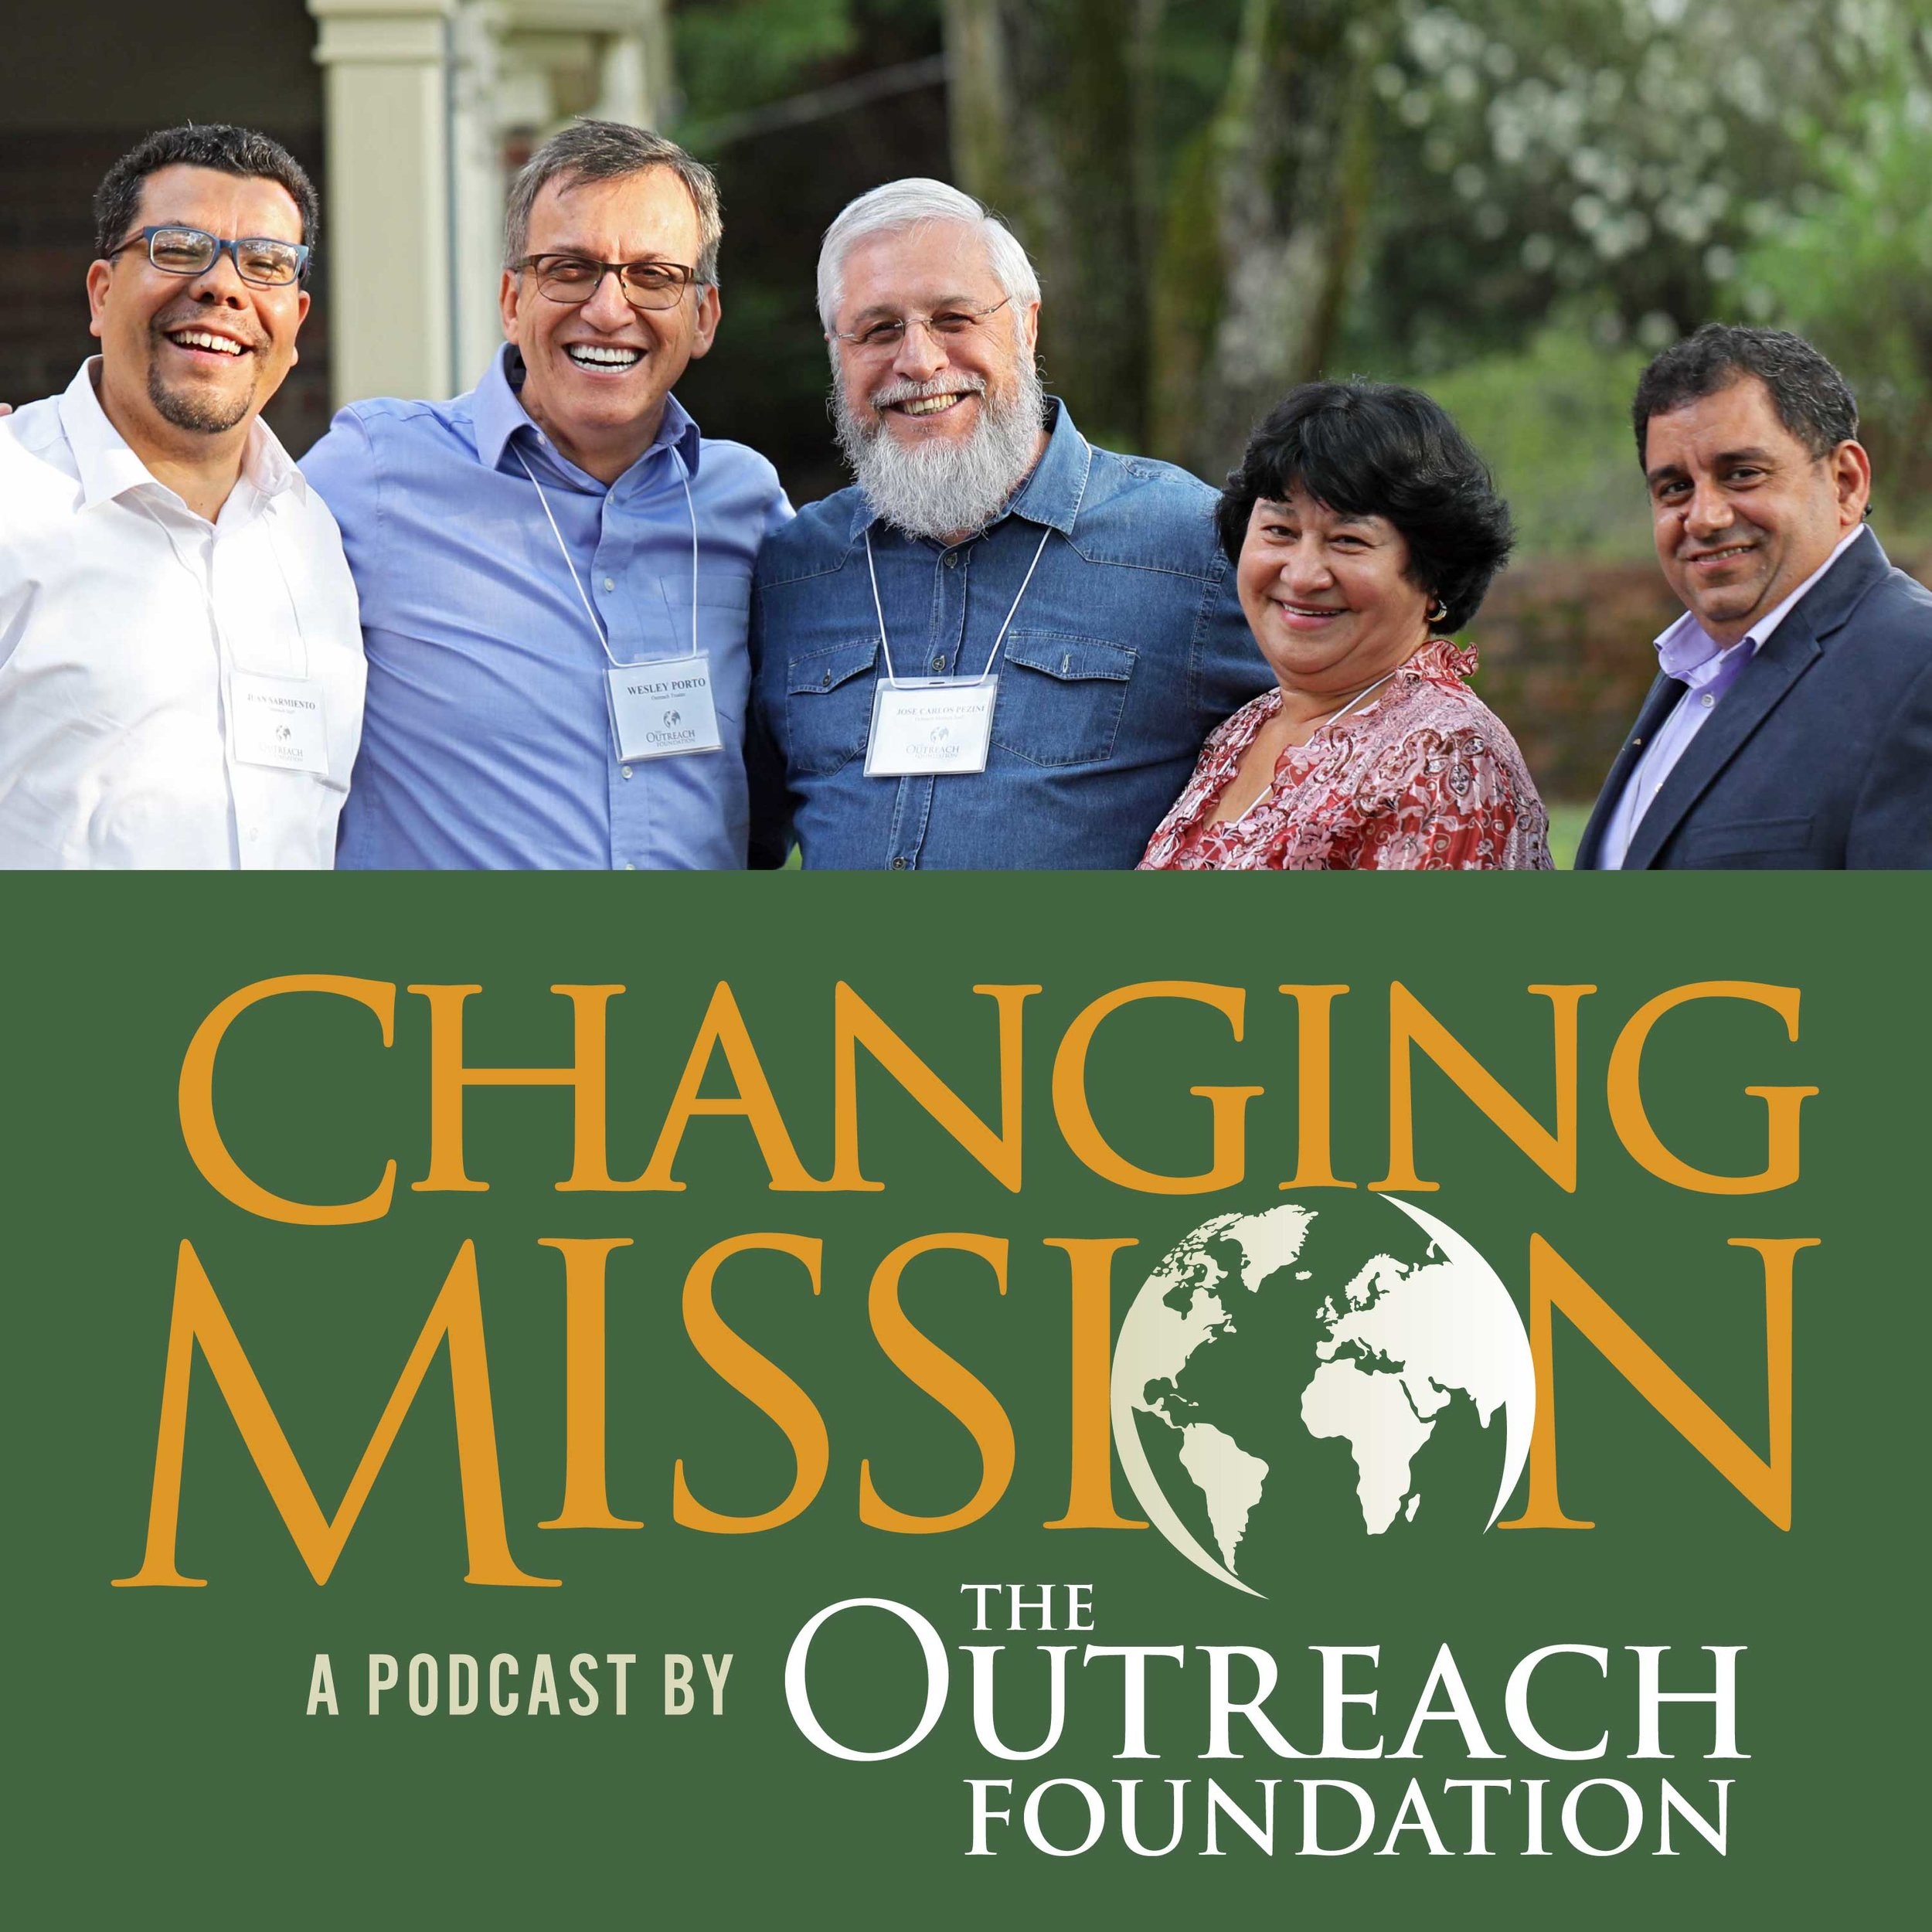 Changing-Mission-Cover.jpg